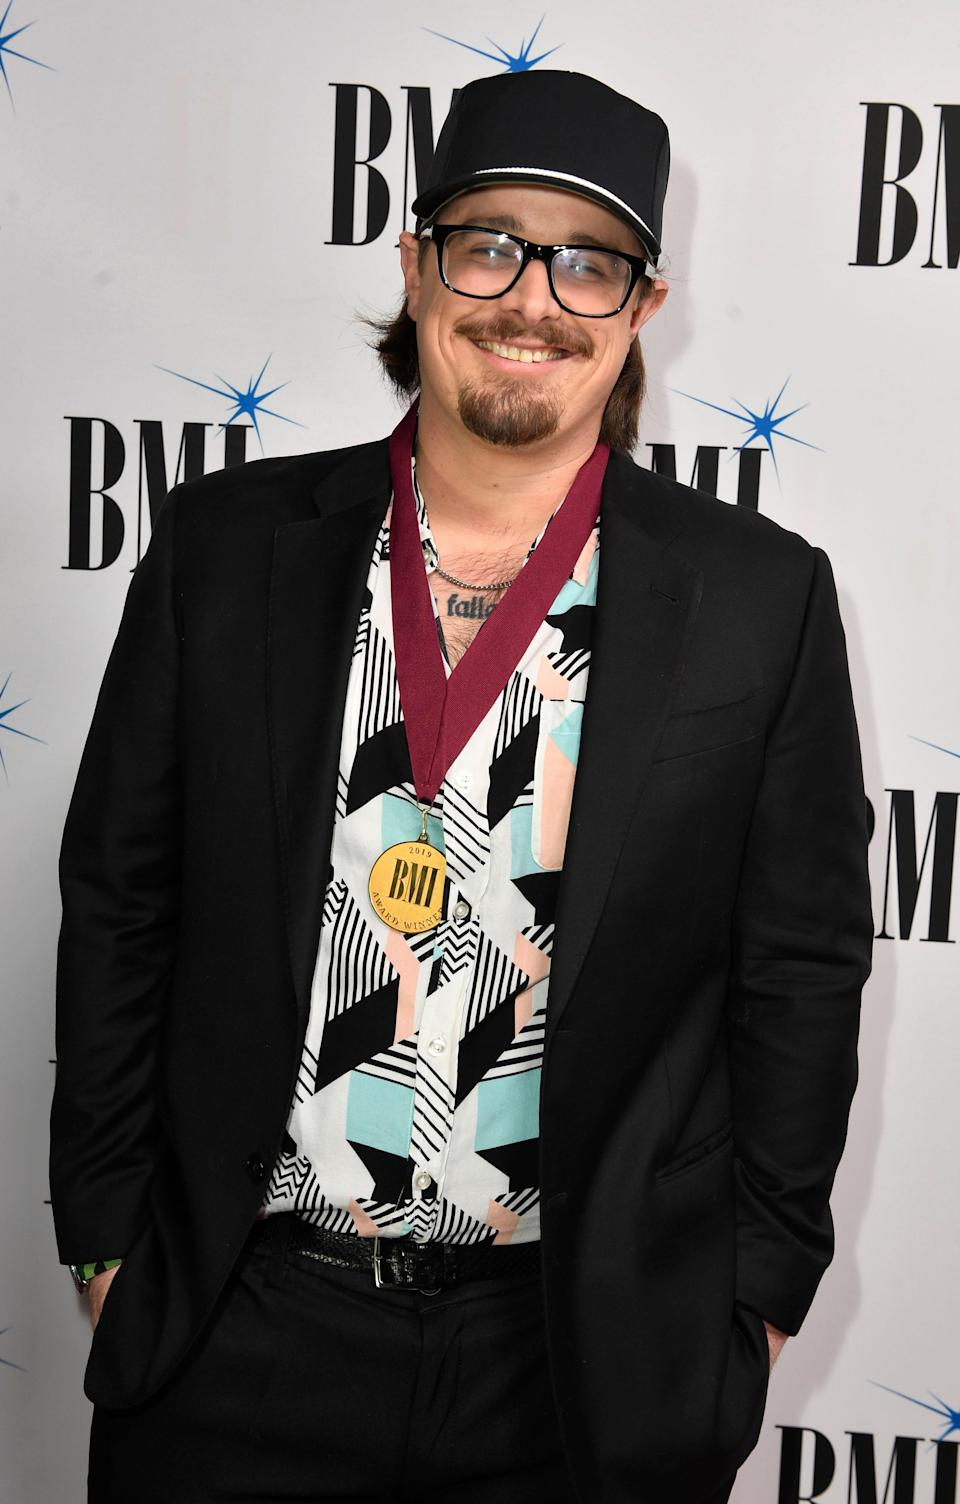 Hardy scored a nod for New Male Artist of the Year.